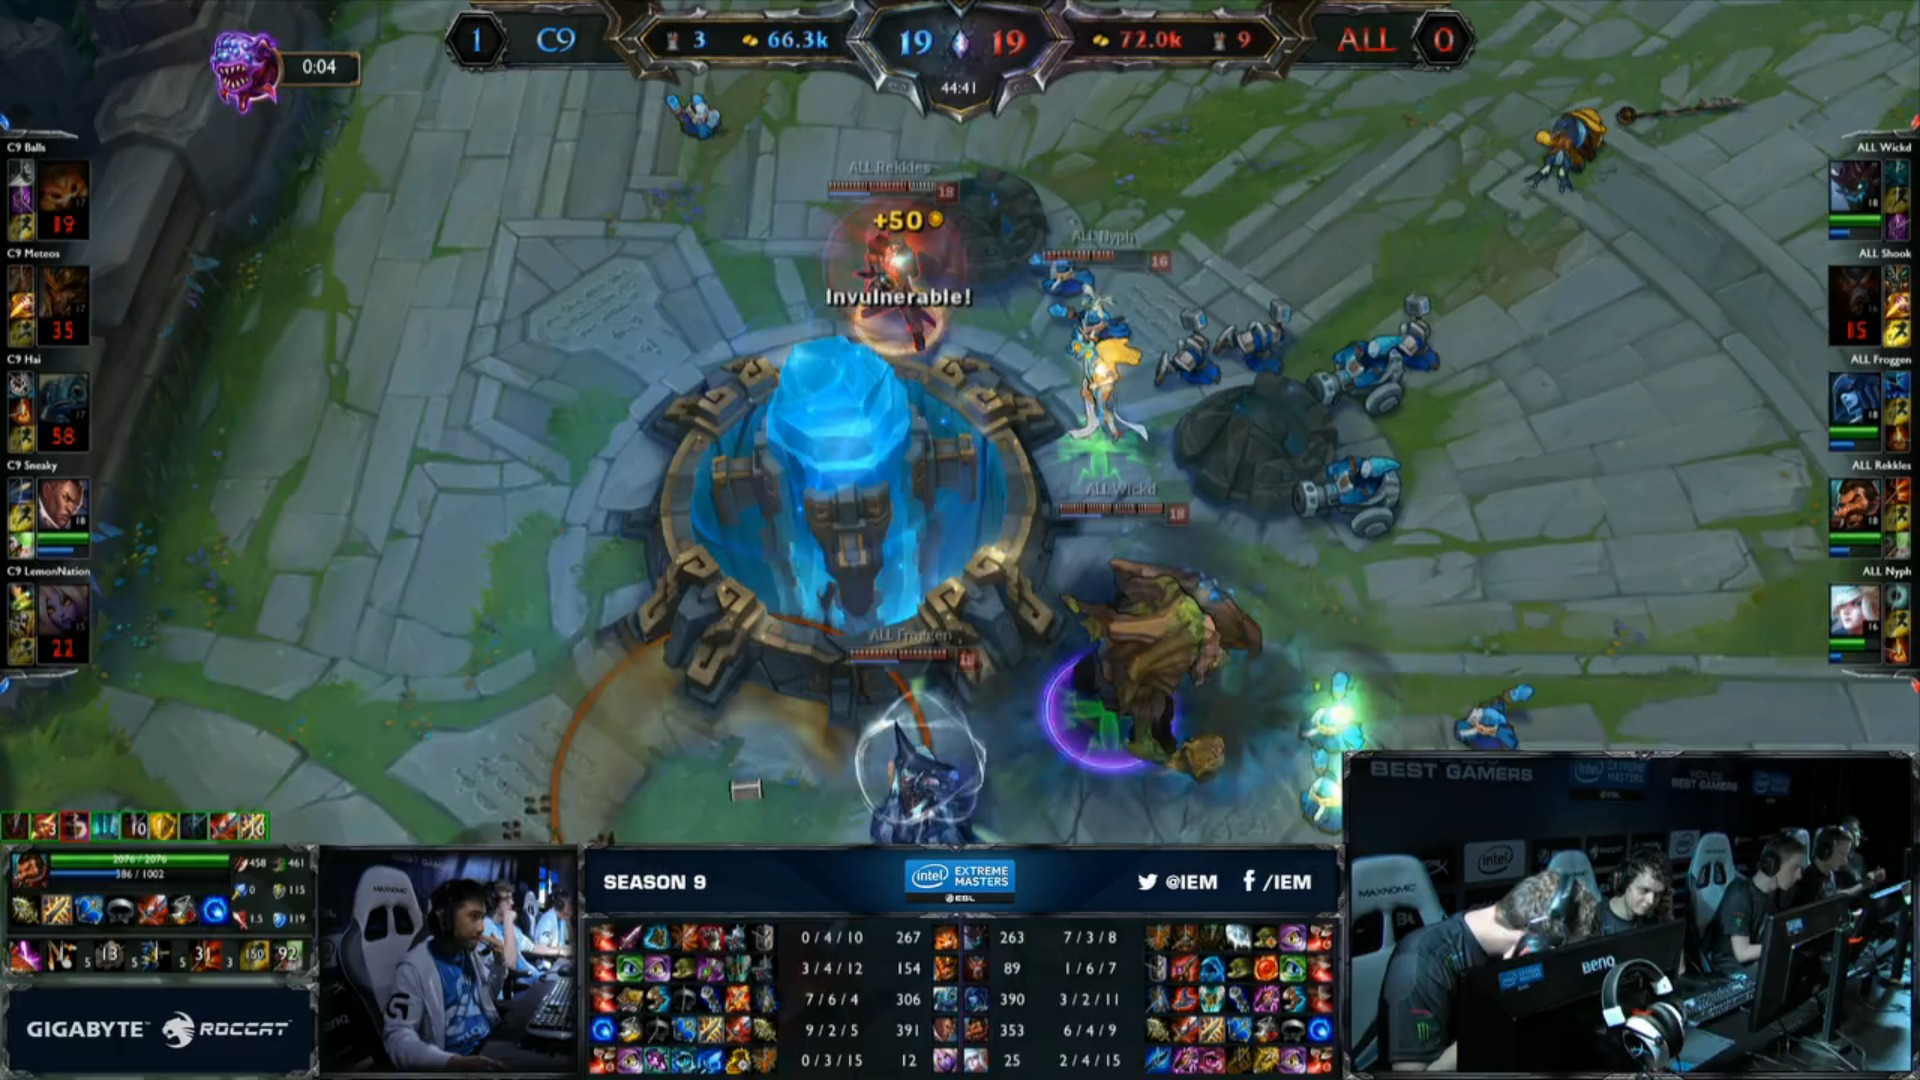 C9-ALL-GAME2